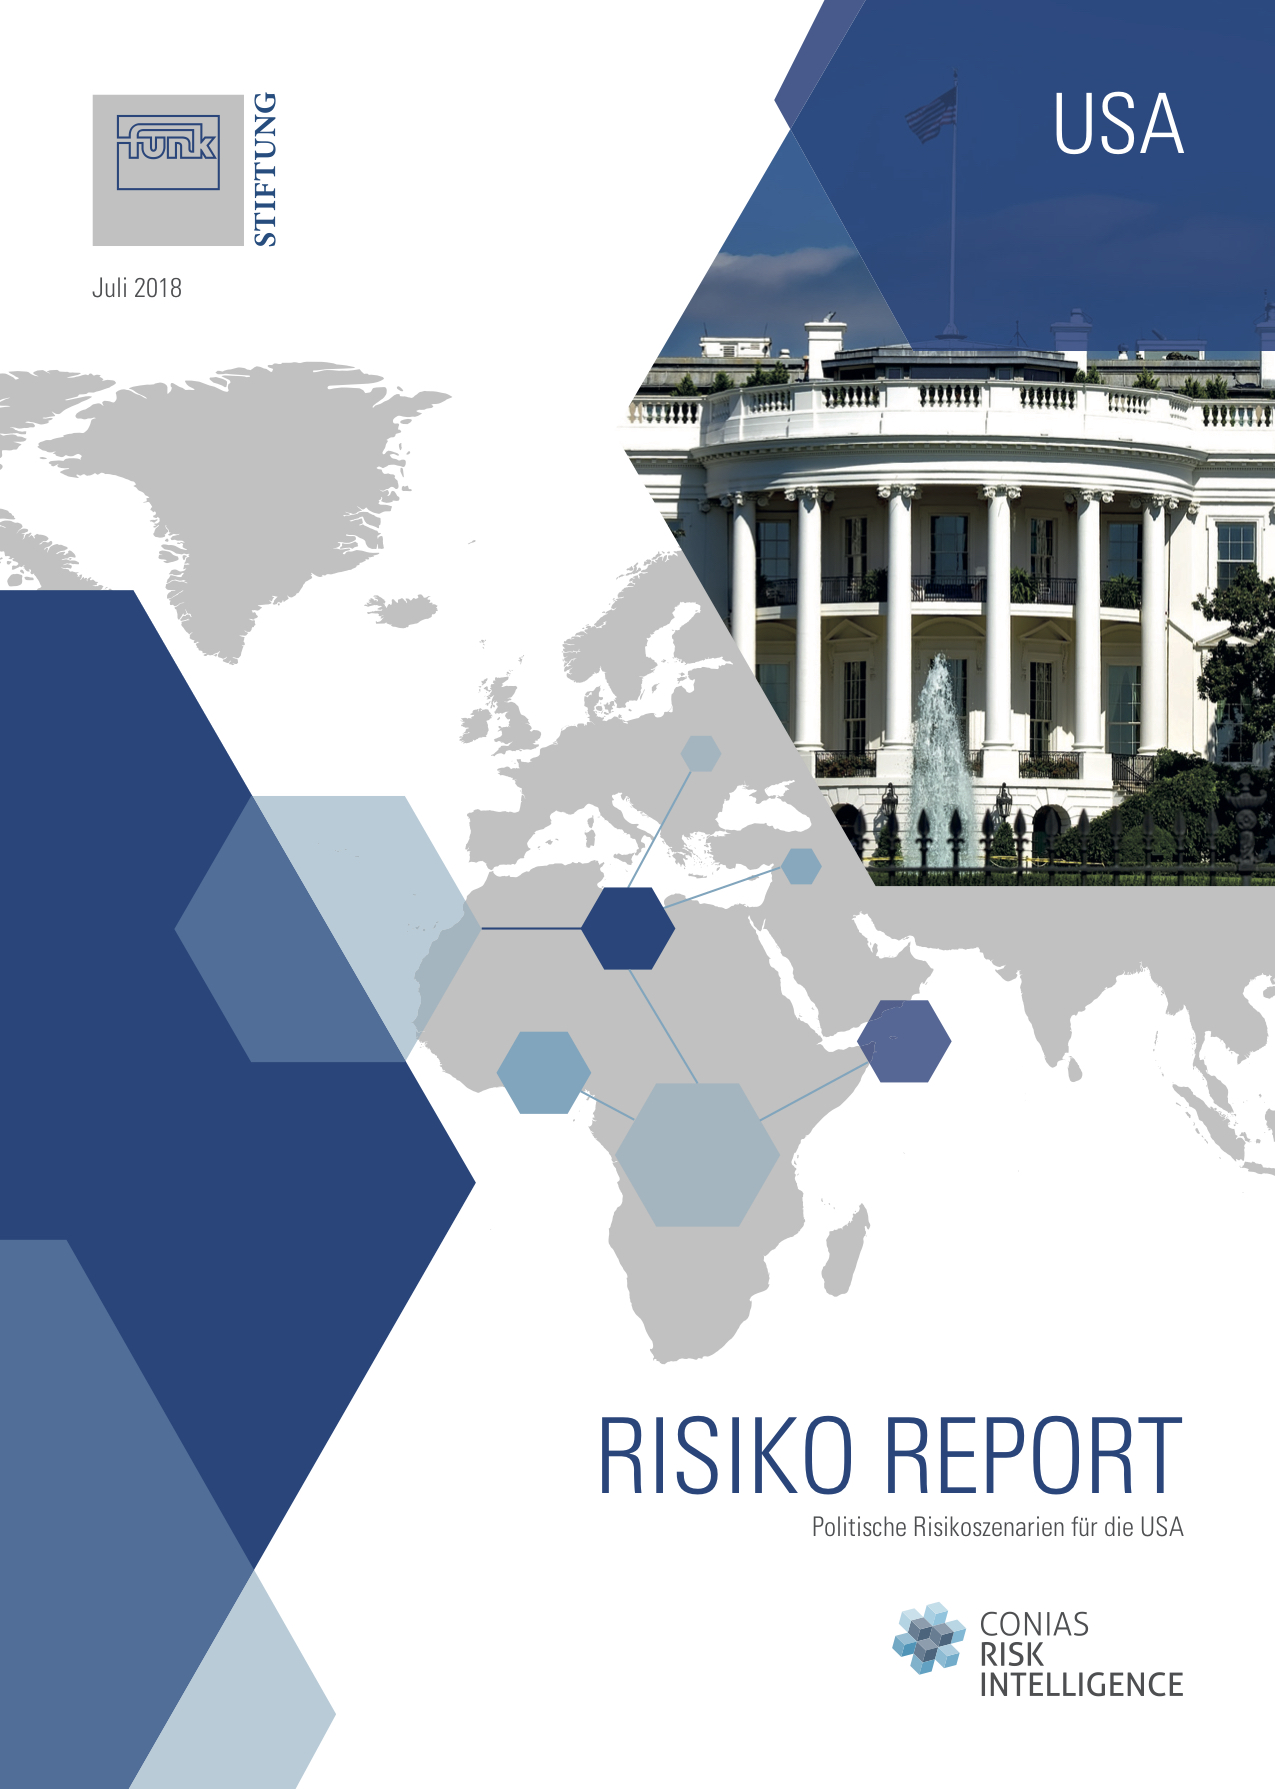 Risiko Report USA